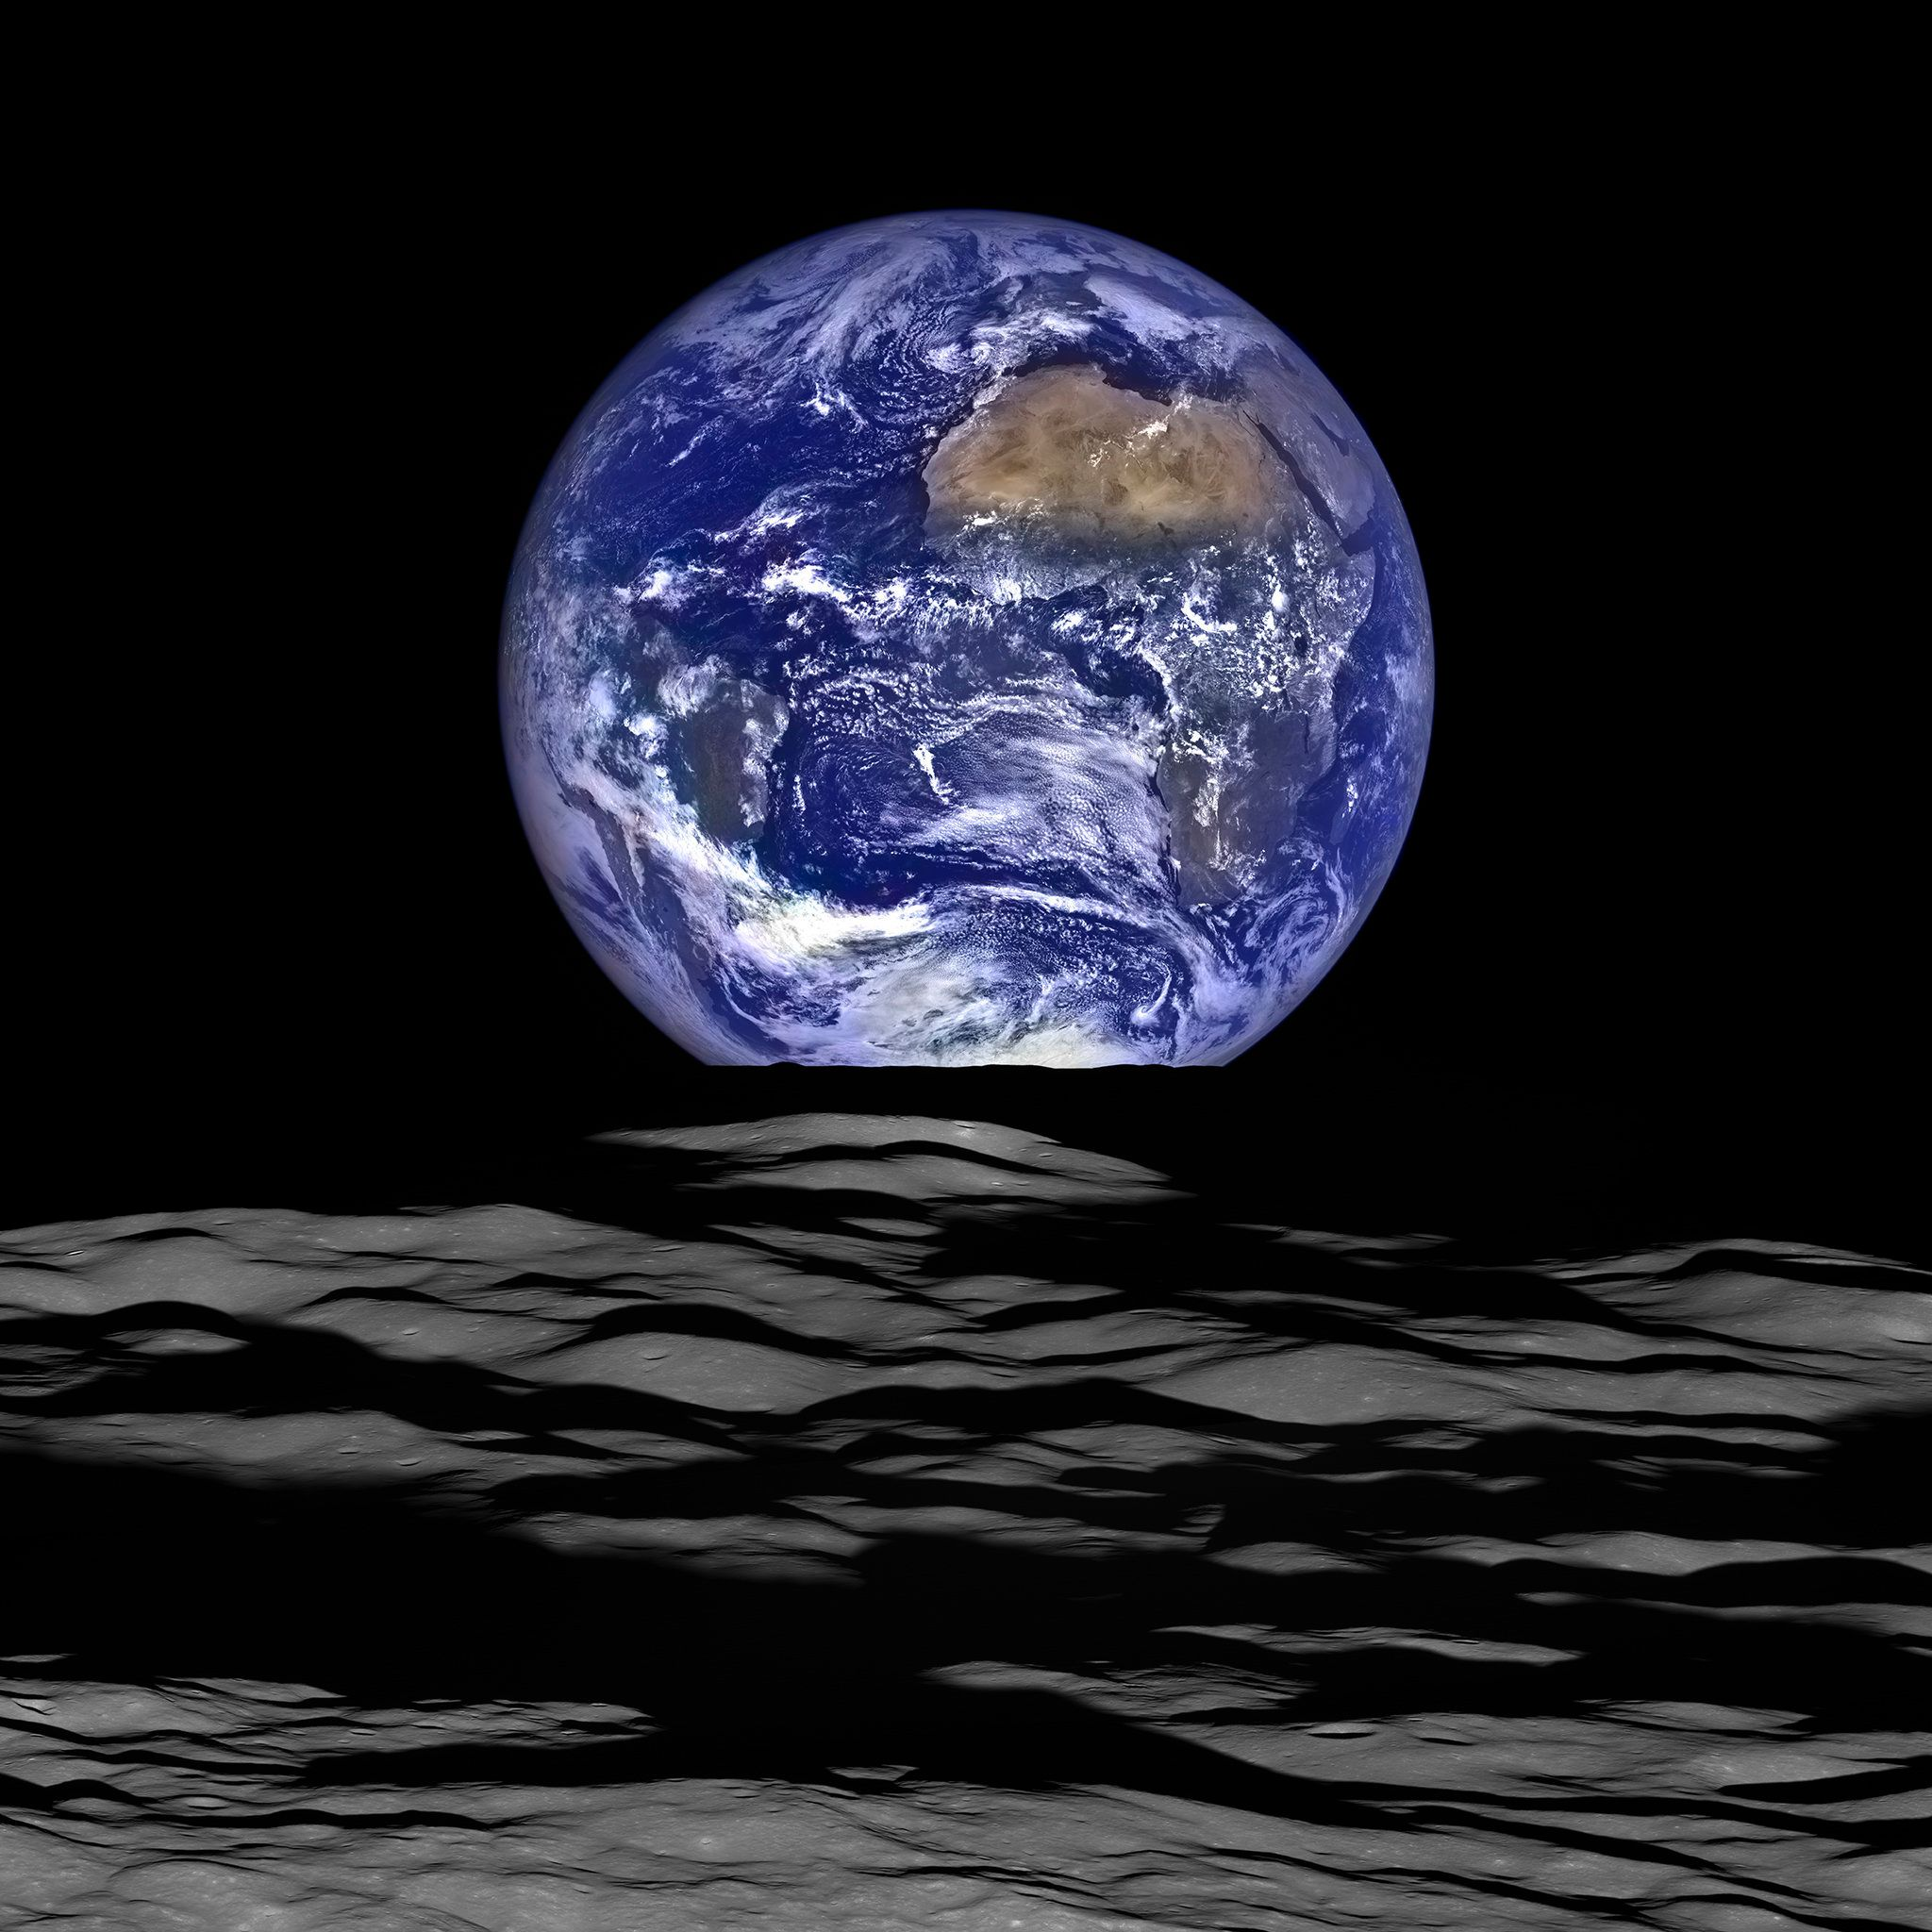 NASA's Lunar Reconnaissance Orbiter captured a unique view of Earth from the spacecraft's vantage point in orbit around the moon.